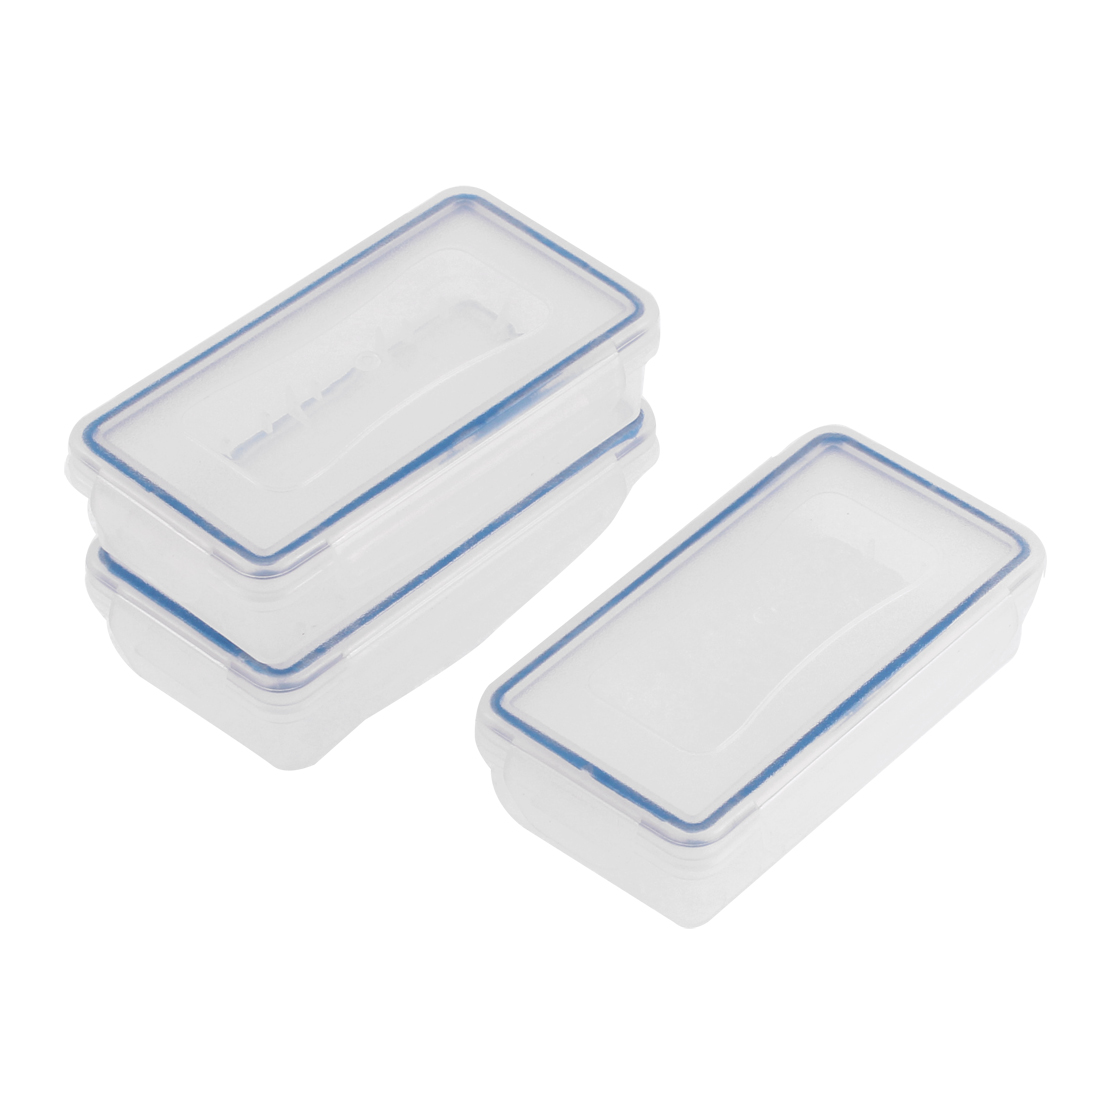 Plastic Rectangle Shape 18650 Battery Protective Case Box Clear Blue 3Pcs